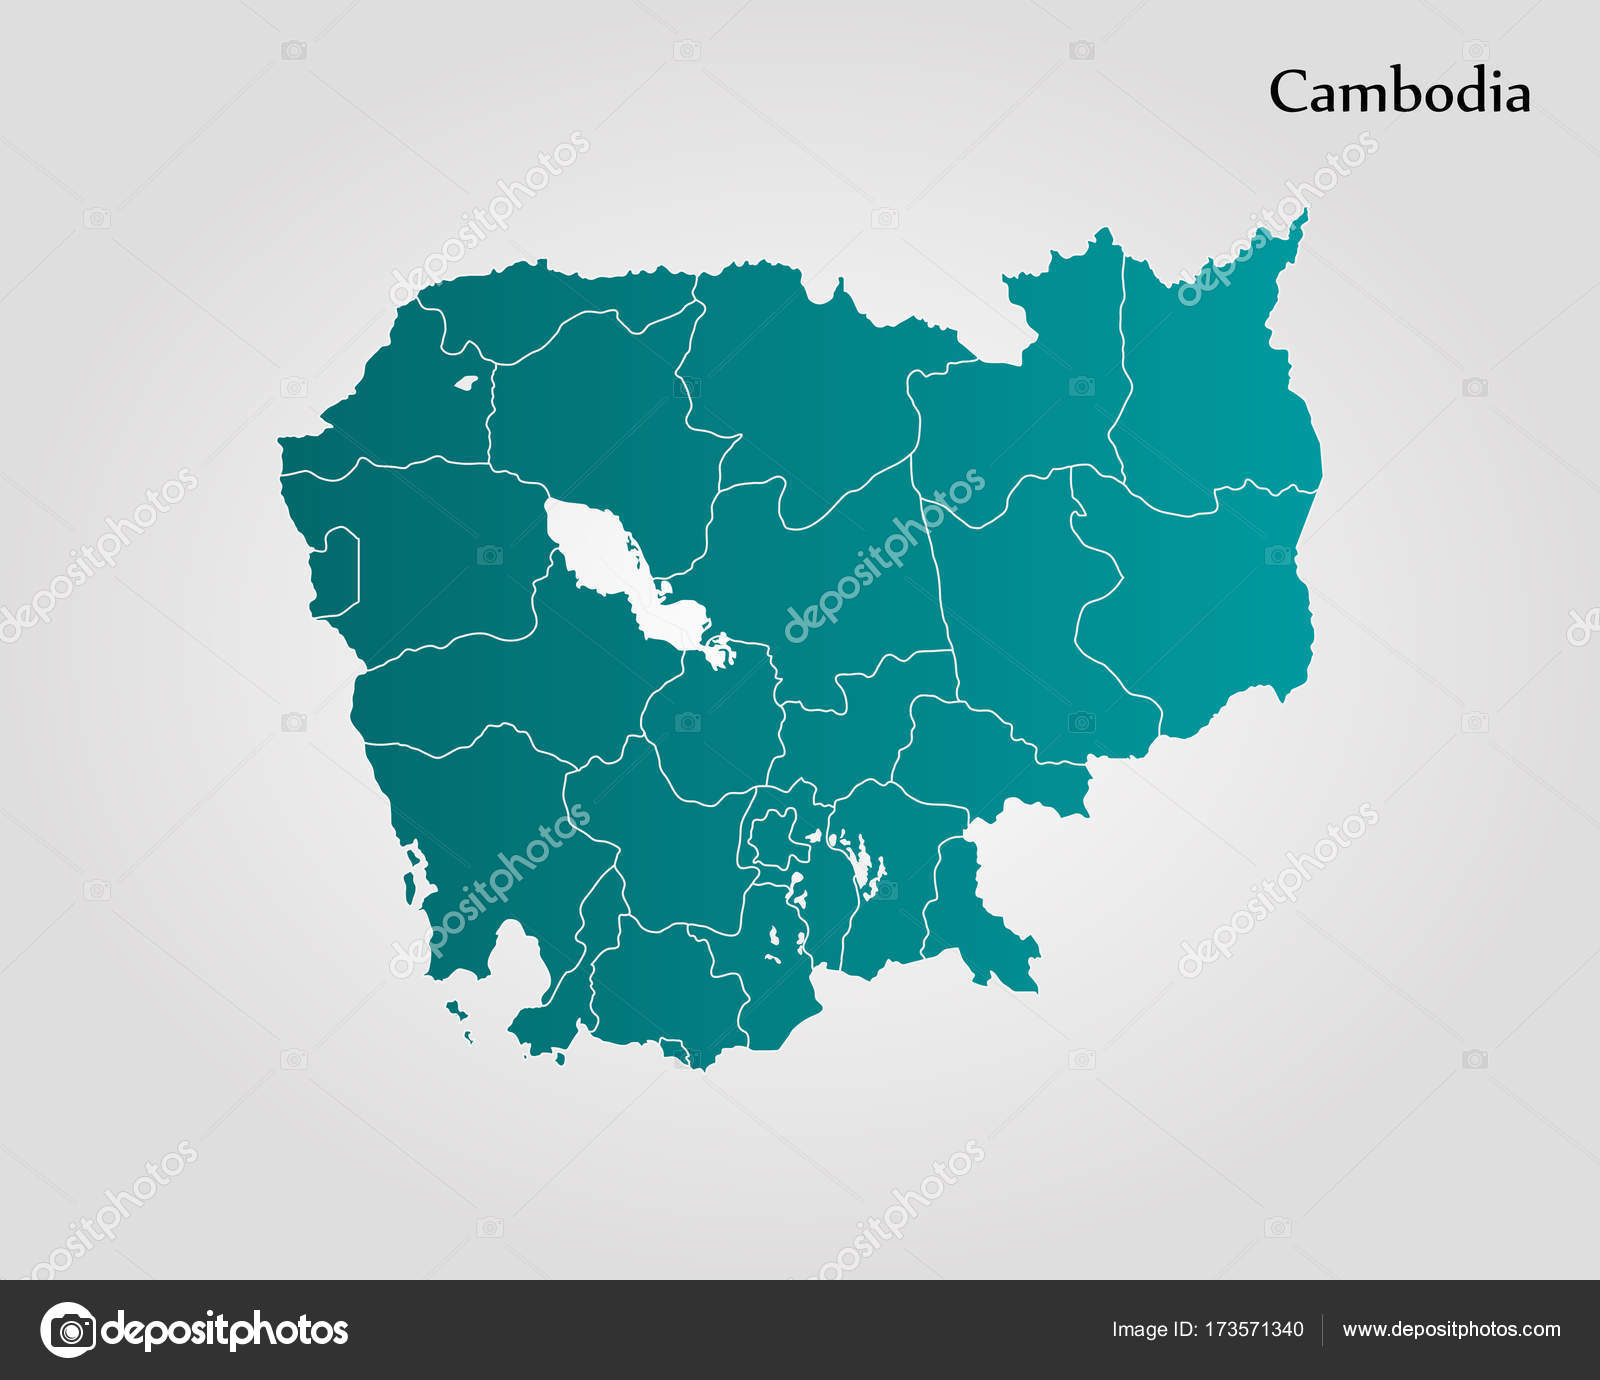 Map of cambodia stock vector uglegorets 173571340 map of cambodia vector illustration world map vector by uglegorets gumiabroncs Image collections